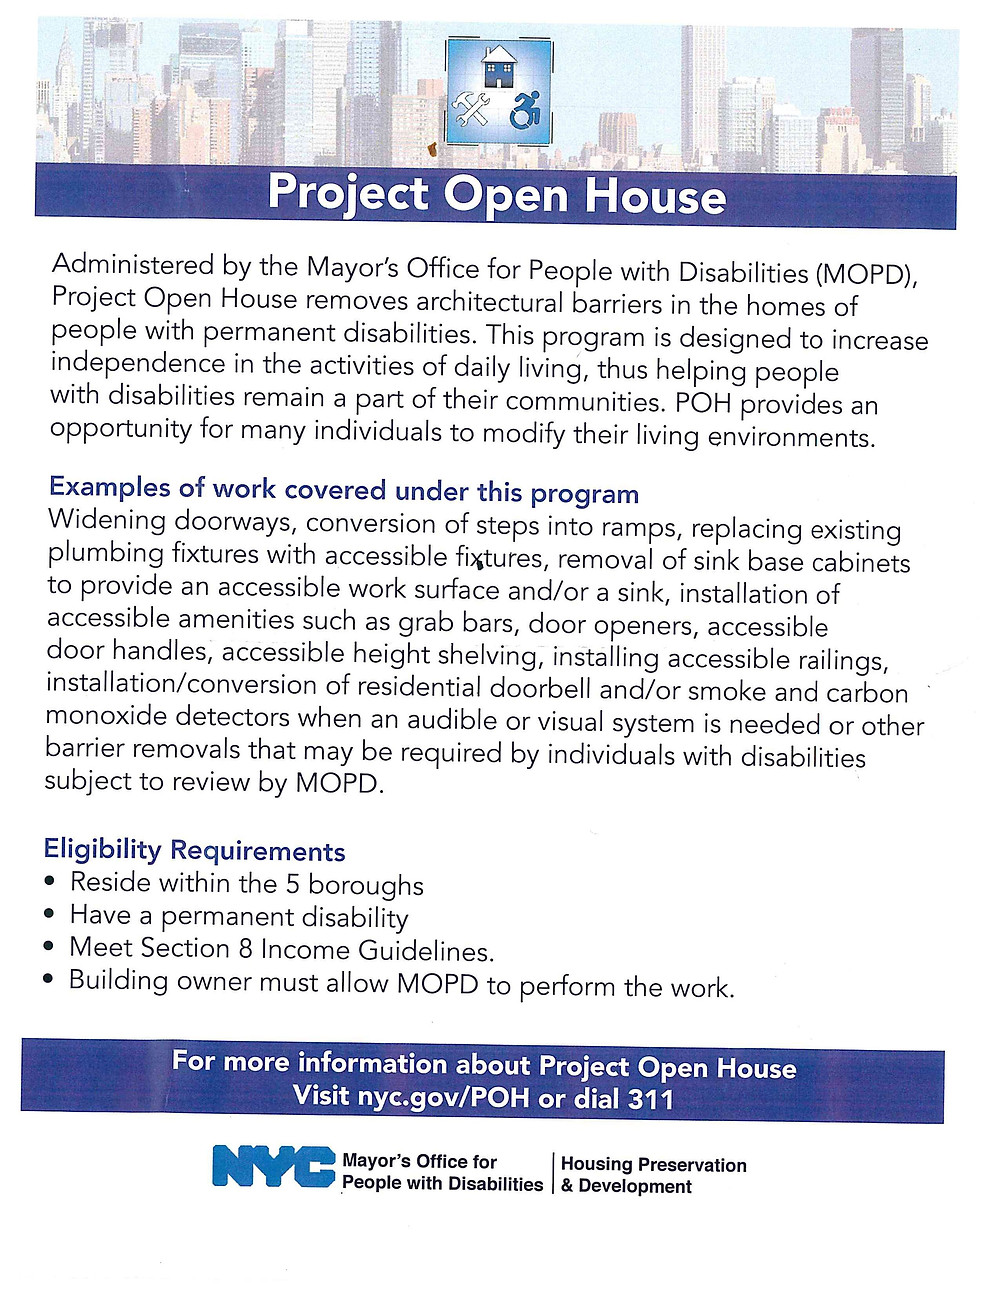 Flyer on Project Open House from NYC Mayor's Office for People with Disabilities (MOPD)